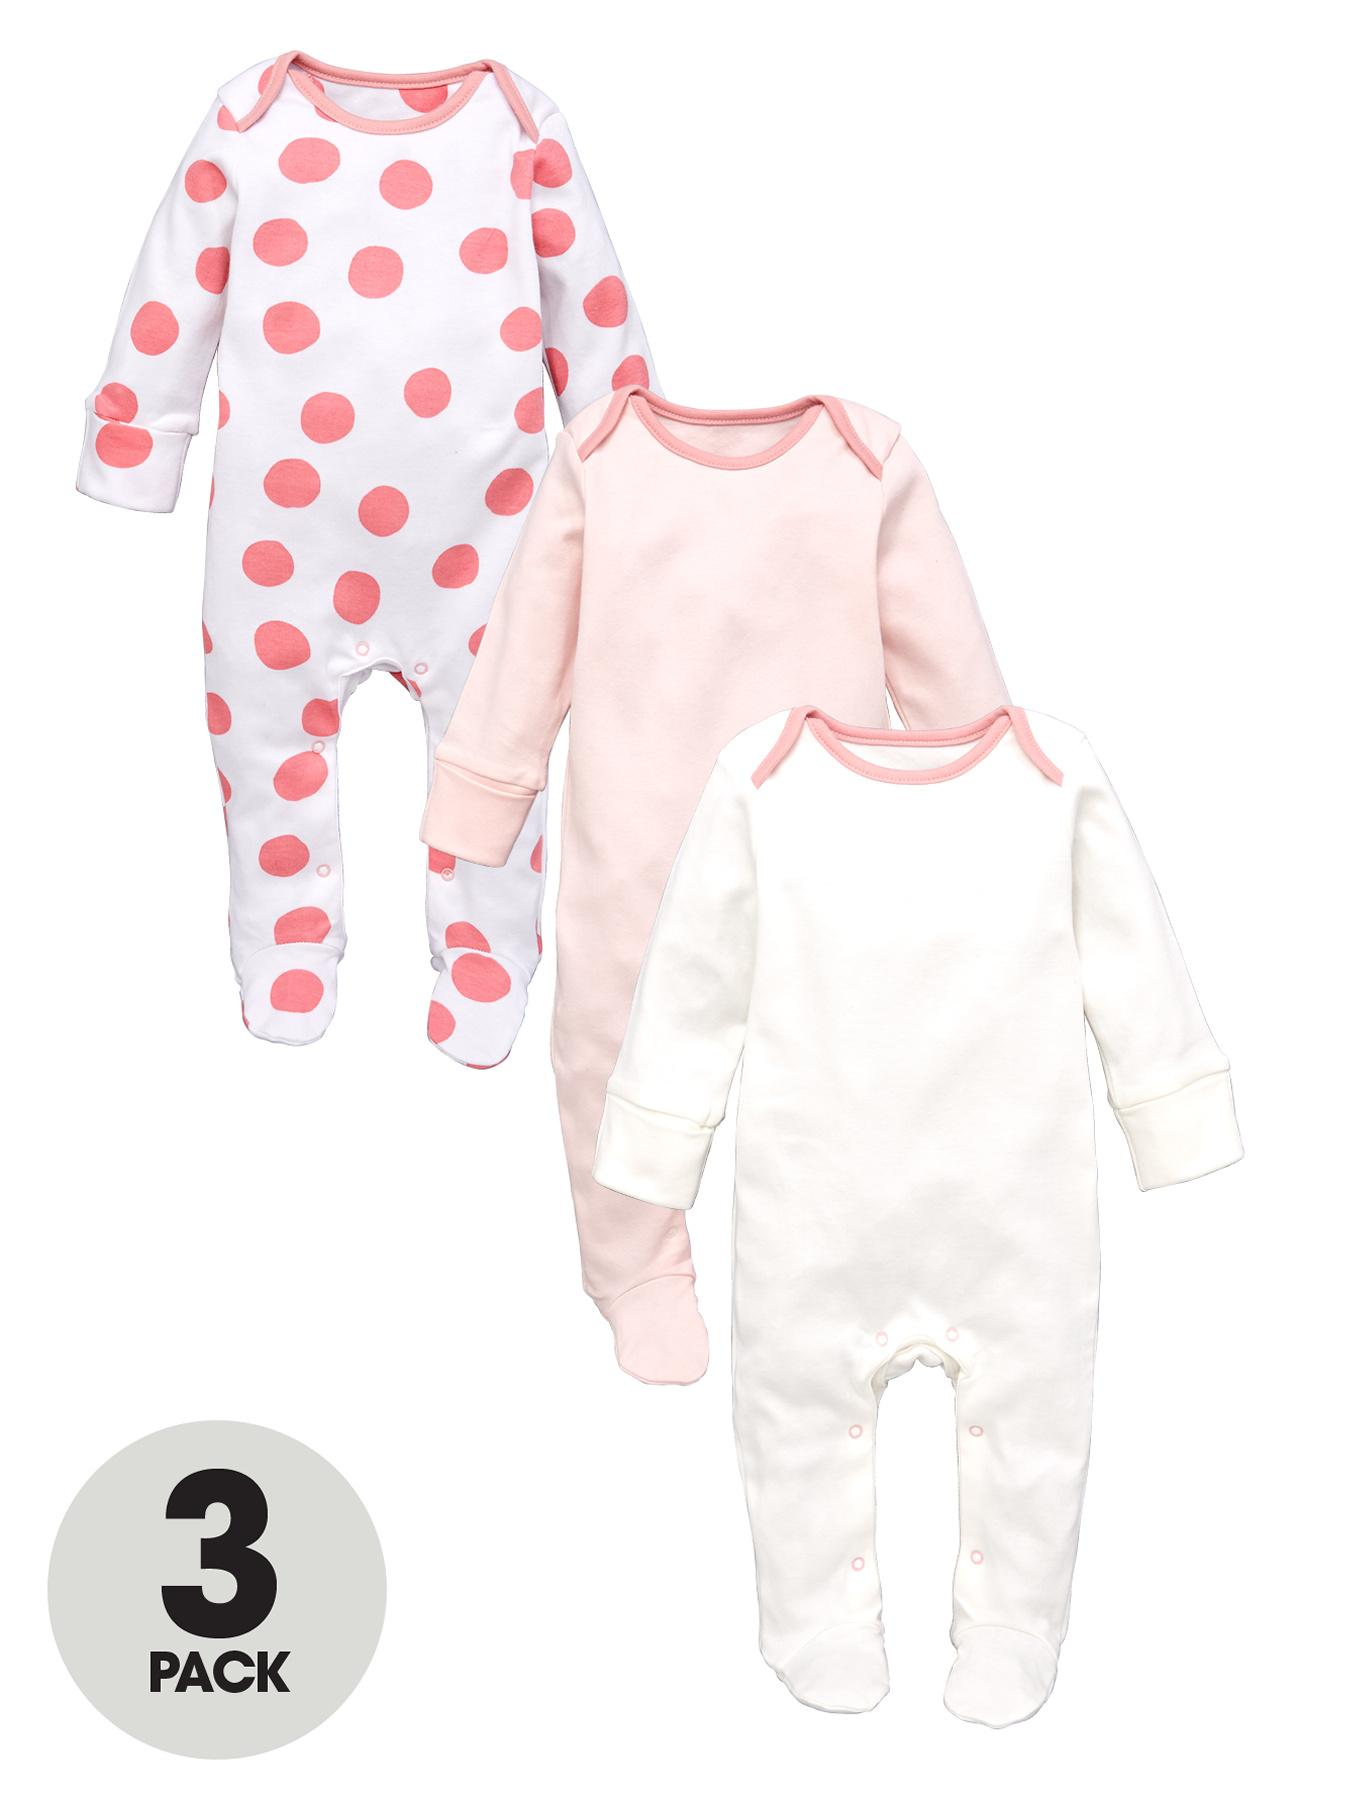 Ladybird Girls Great Value Sleepsuits (3 Pack) - Pink, Pink